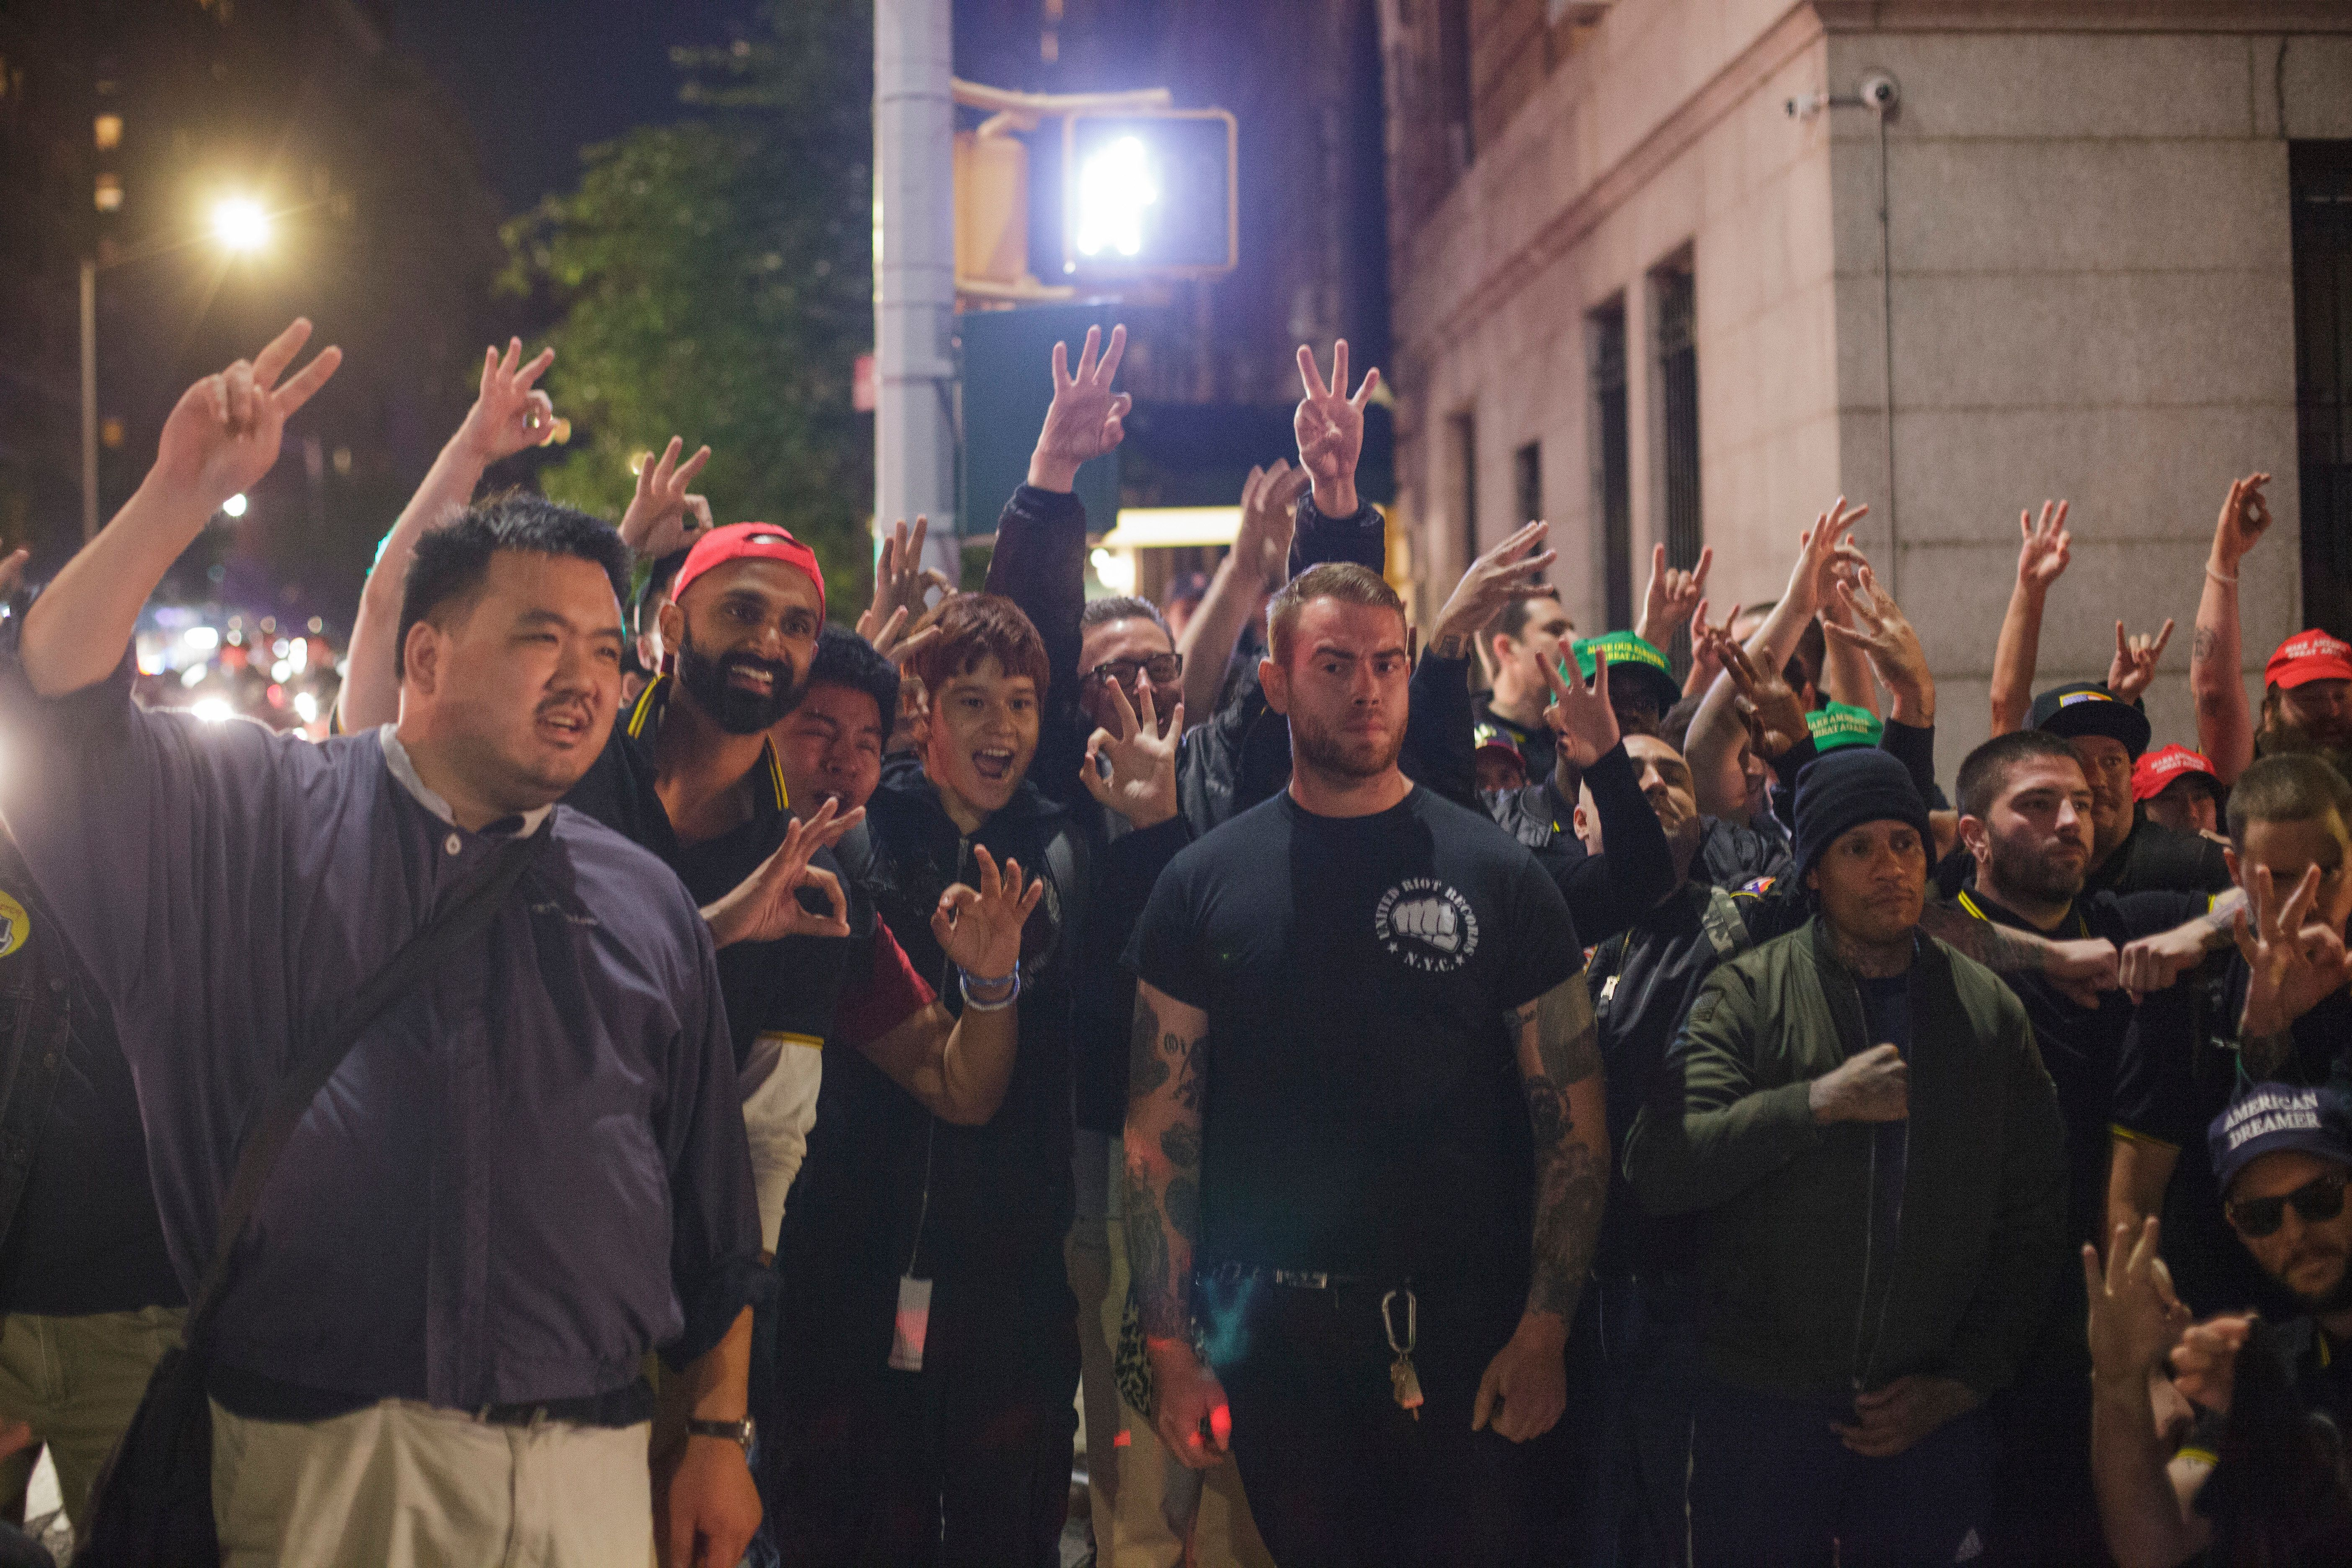 Members of the Proud Boys — some of whom have been arrested — pose for a picture on the night of a vicious attack